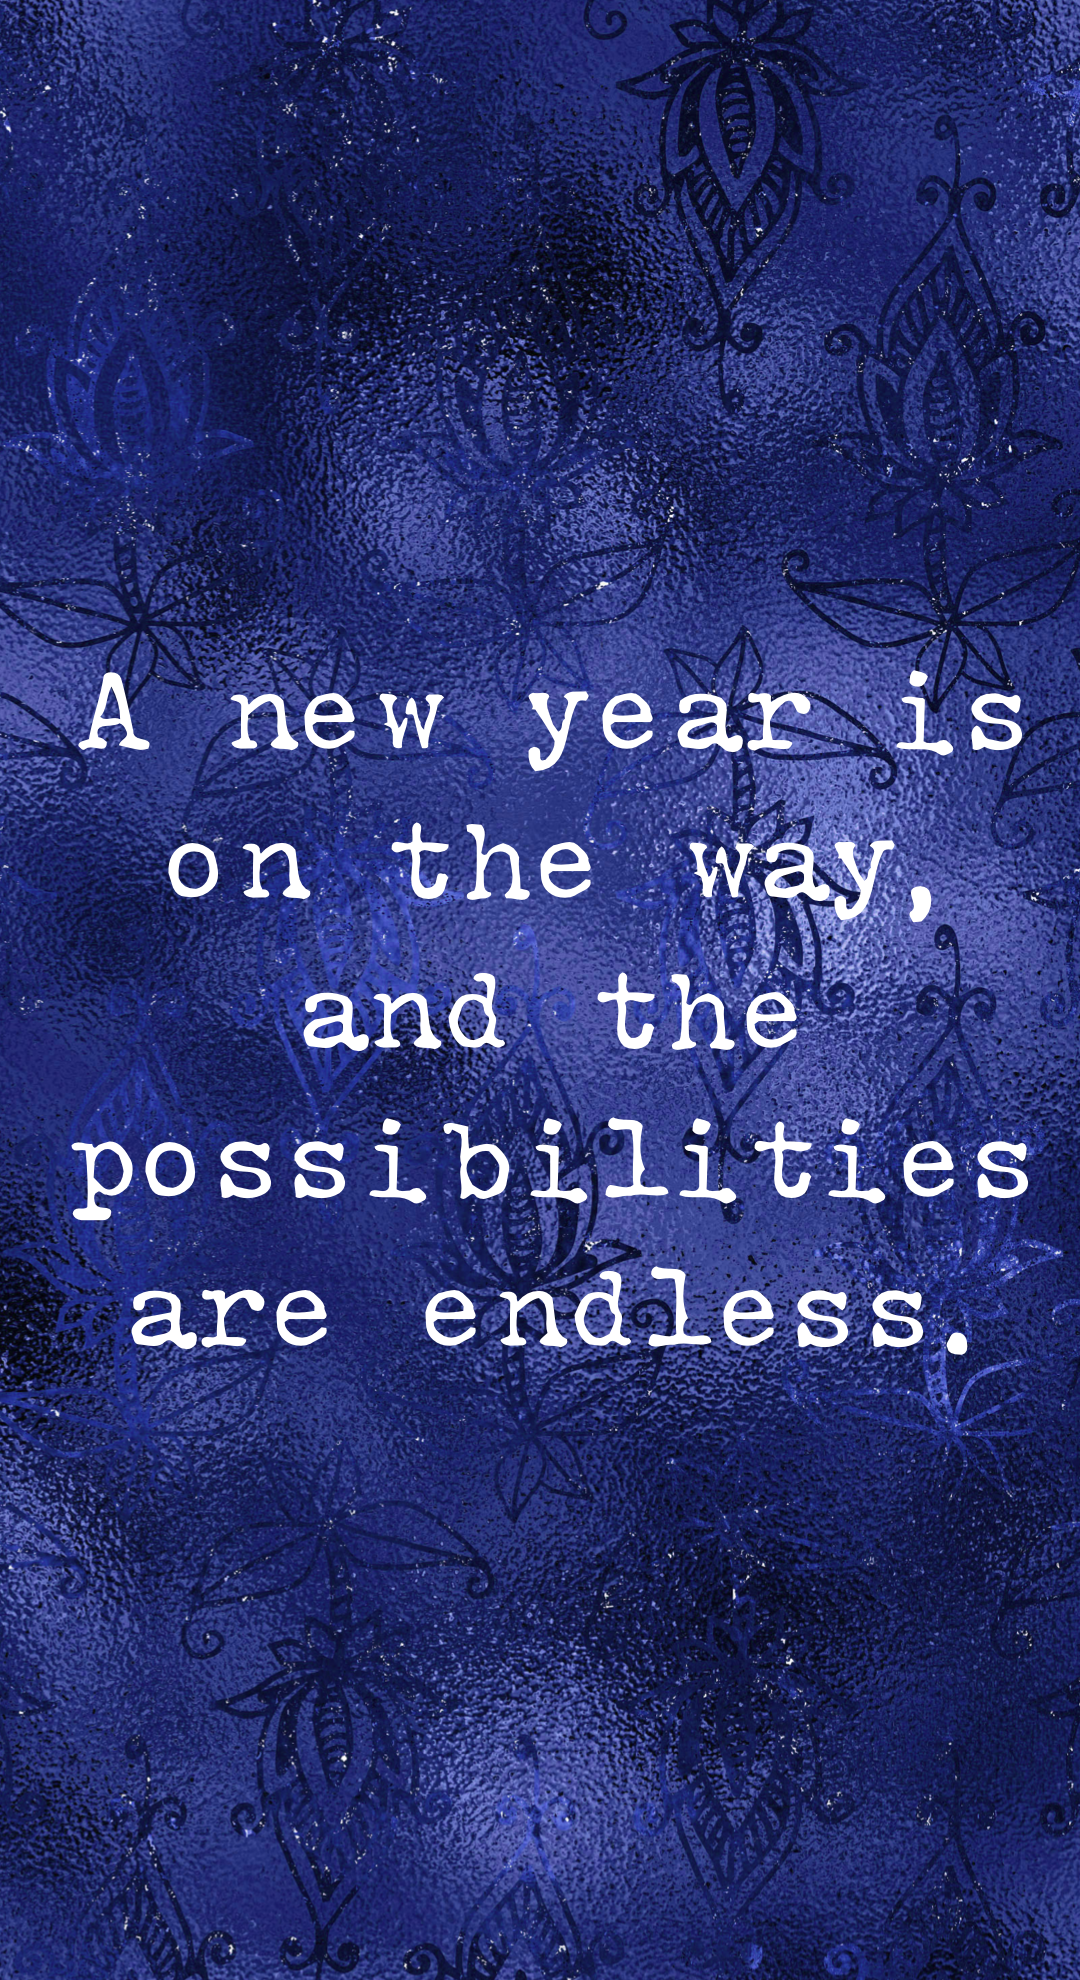 10 Inspiring New Year Quotes for 2020